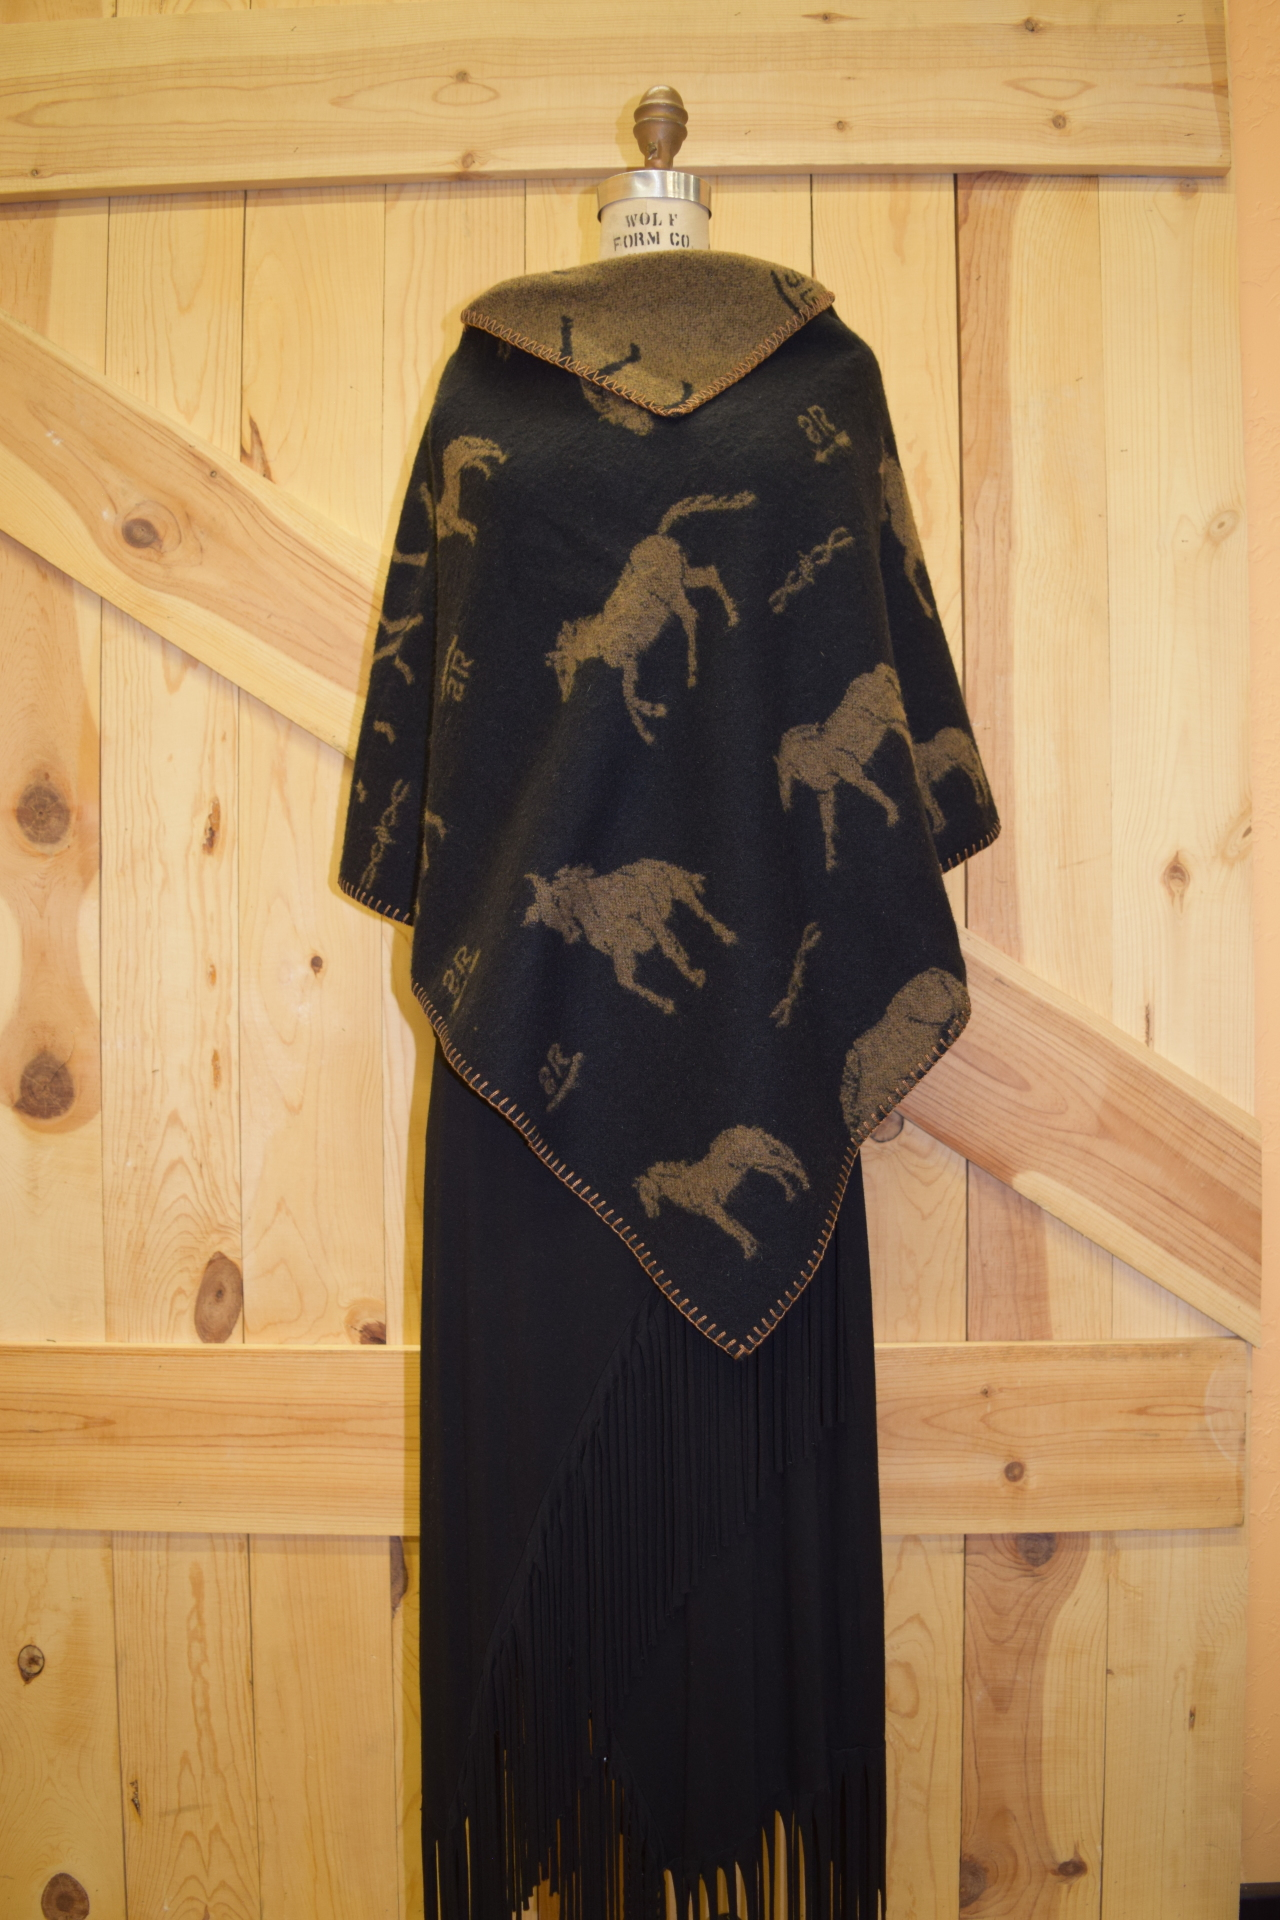 "#227HBBC - B/C RS BRANDS 27"" KERCHIEF PONCHO - $99.95 - SALE - $49.95"